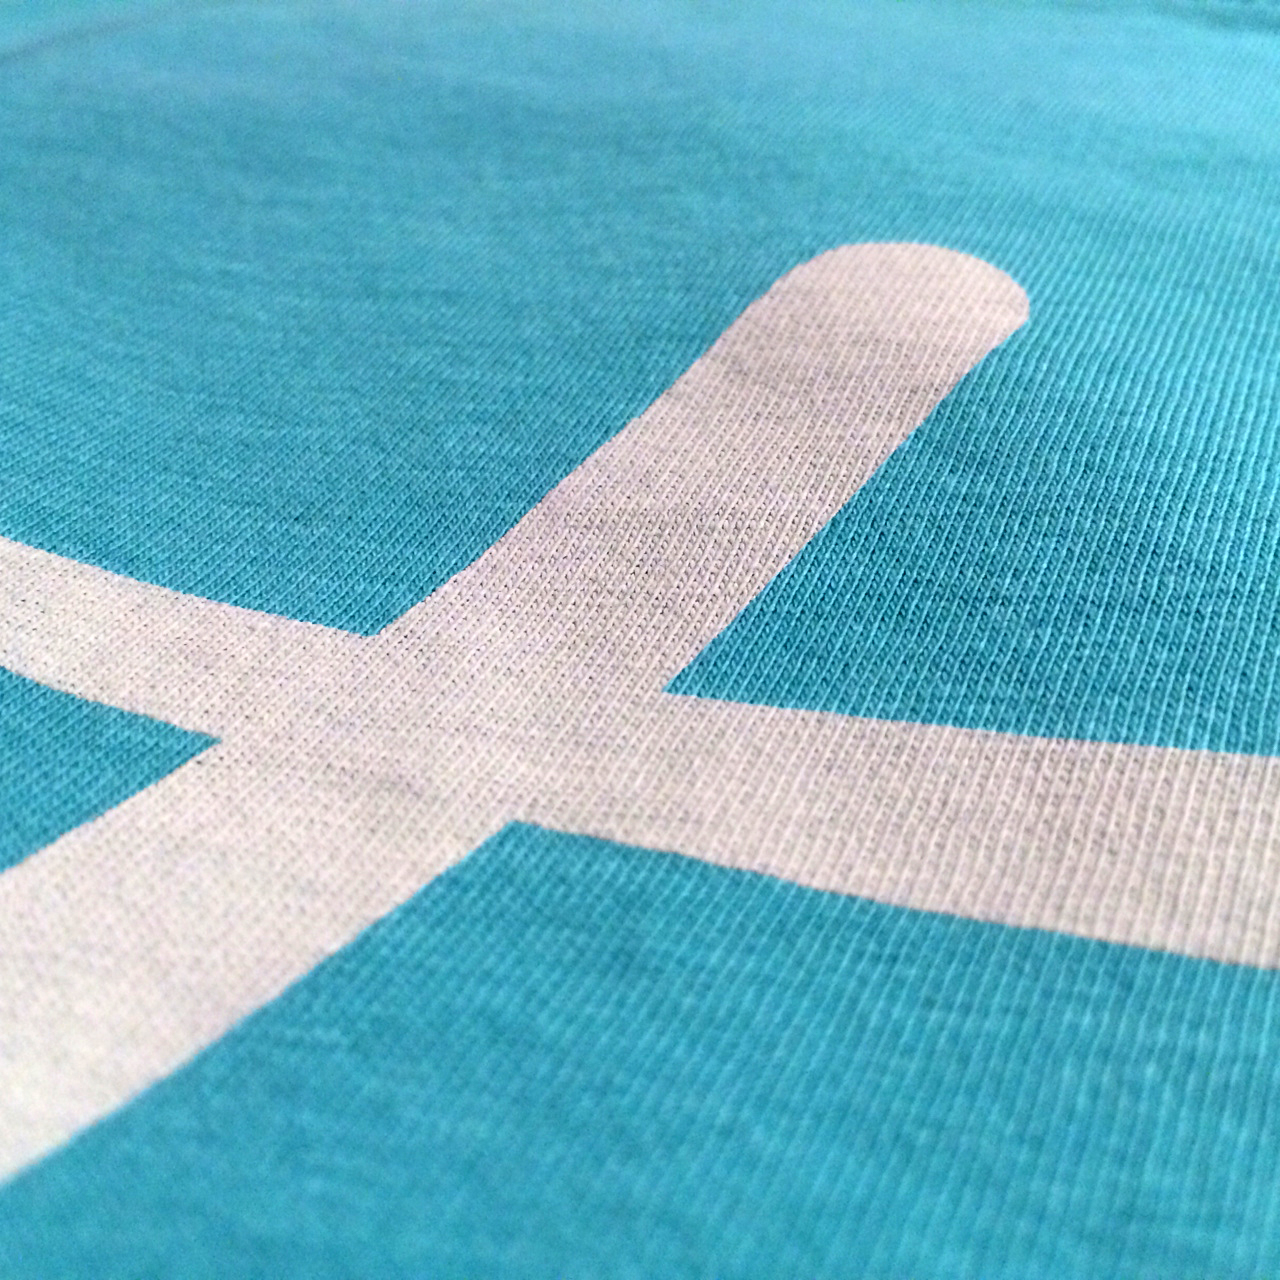 #waterbased #discharge #nextlevelapparel #superluxescreenprinting #trendy